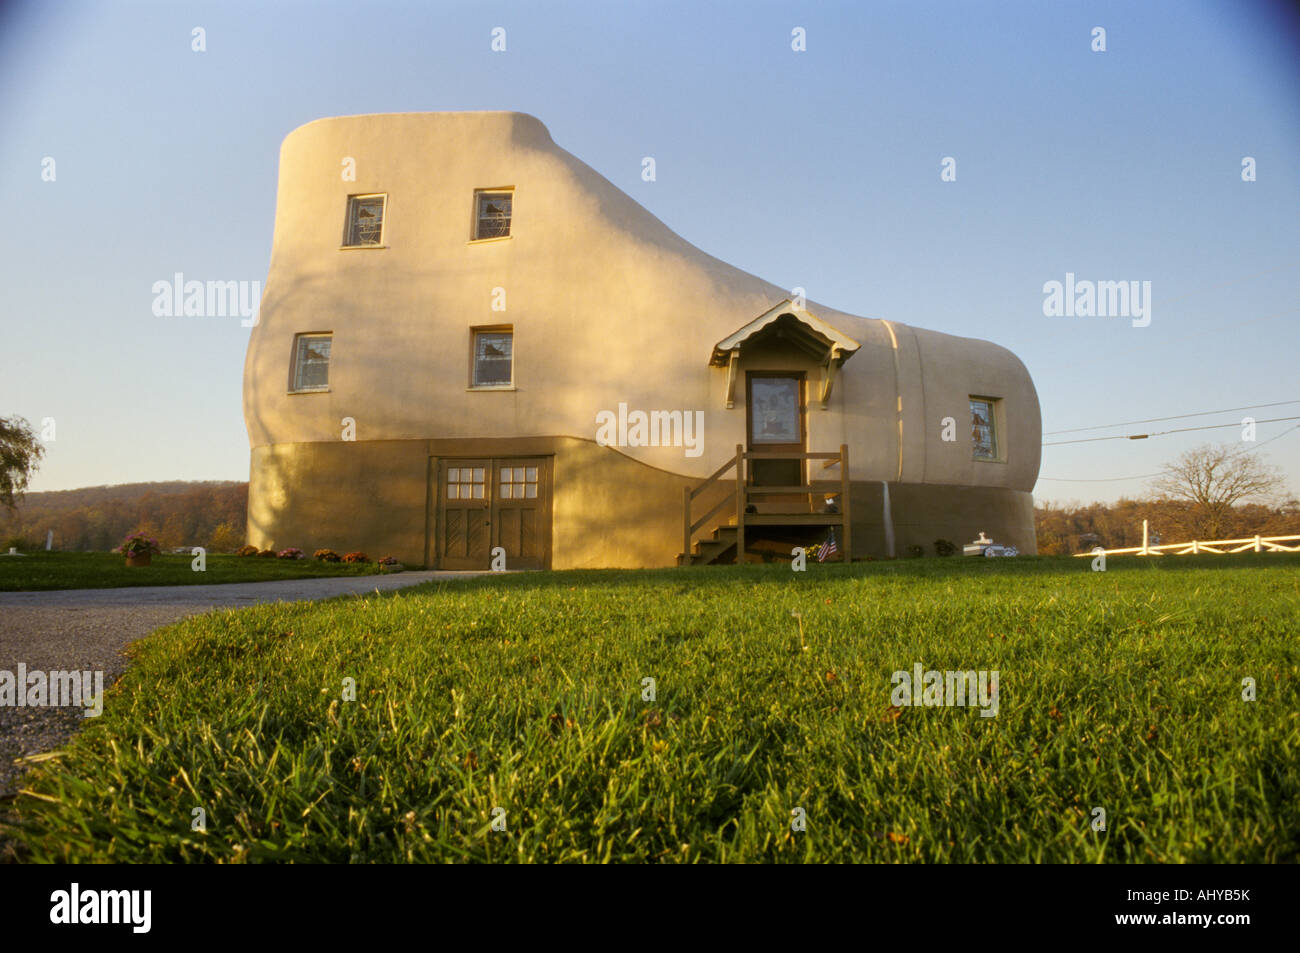 nursery rhyme inspired advertising scheme There was an old lady who lived in a shoe Haines house York PA Pennsylvania - Stock Image